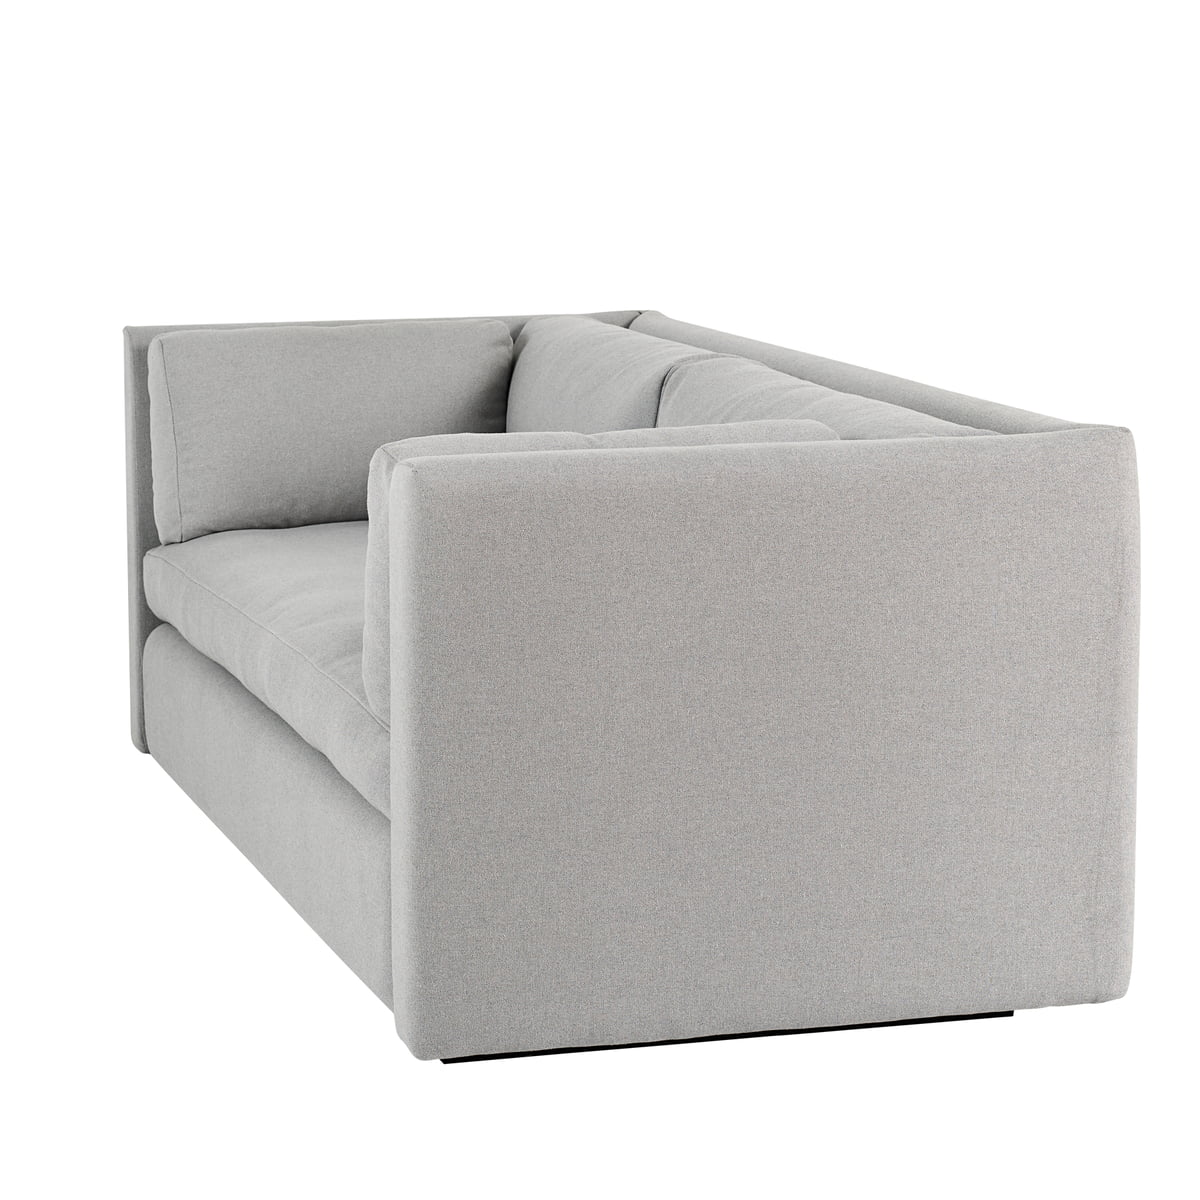 Hay   Hackney Sofa, 2 Seater, Scomo Light Grey